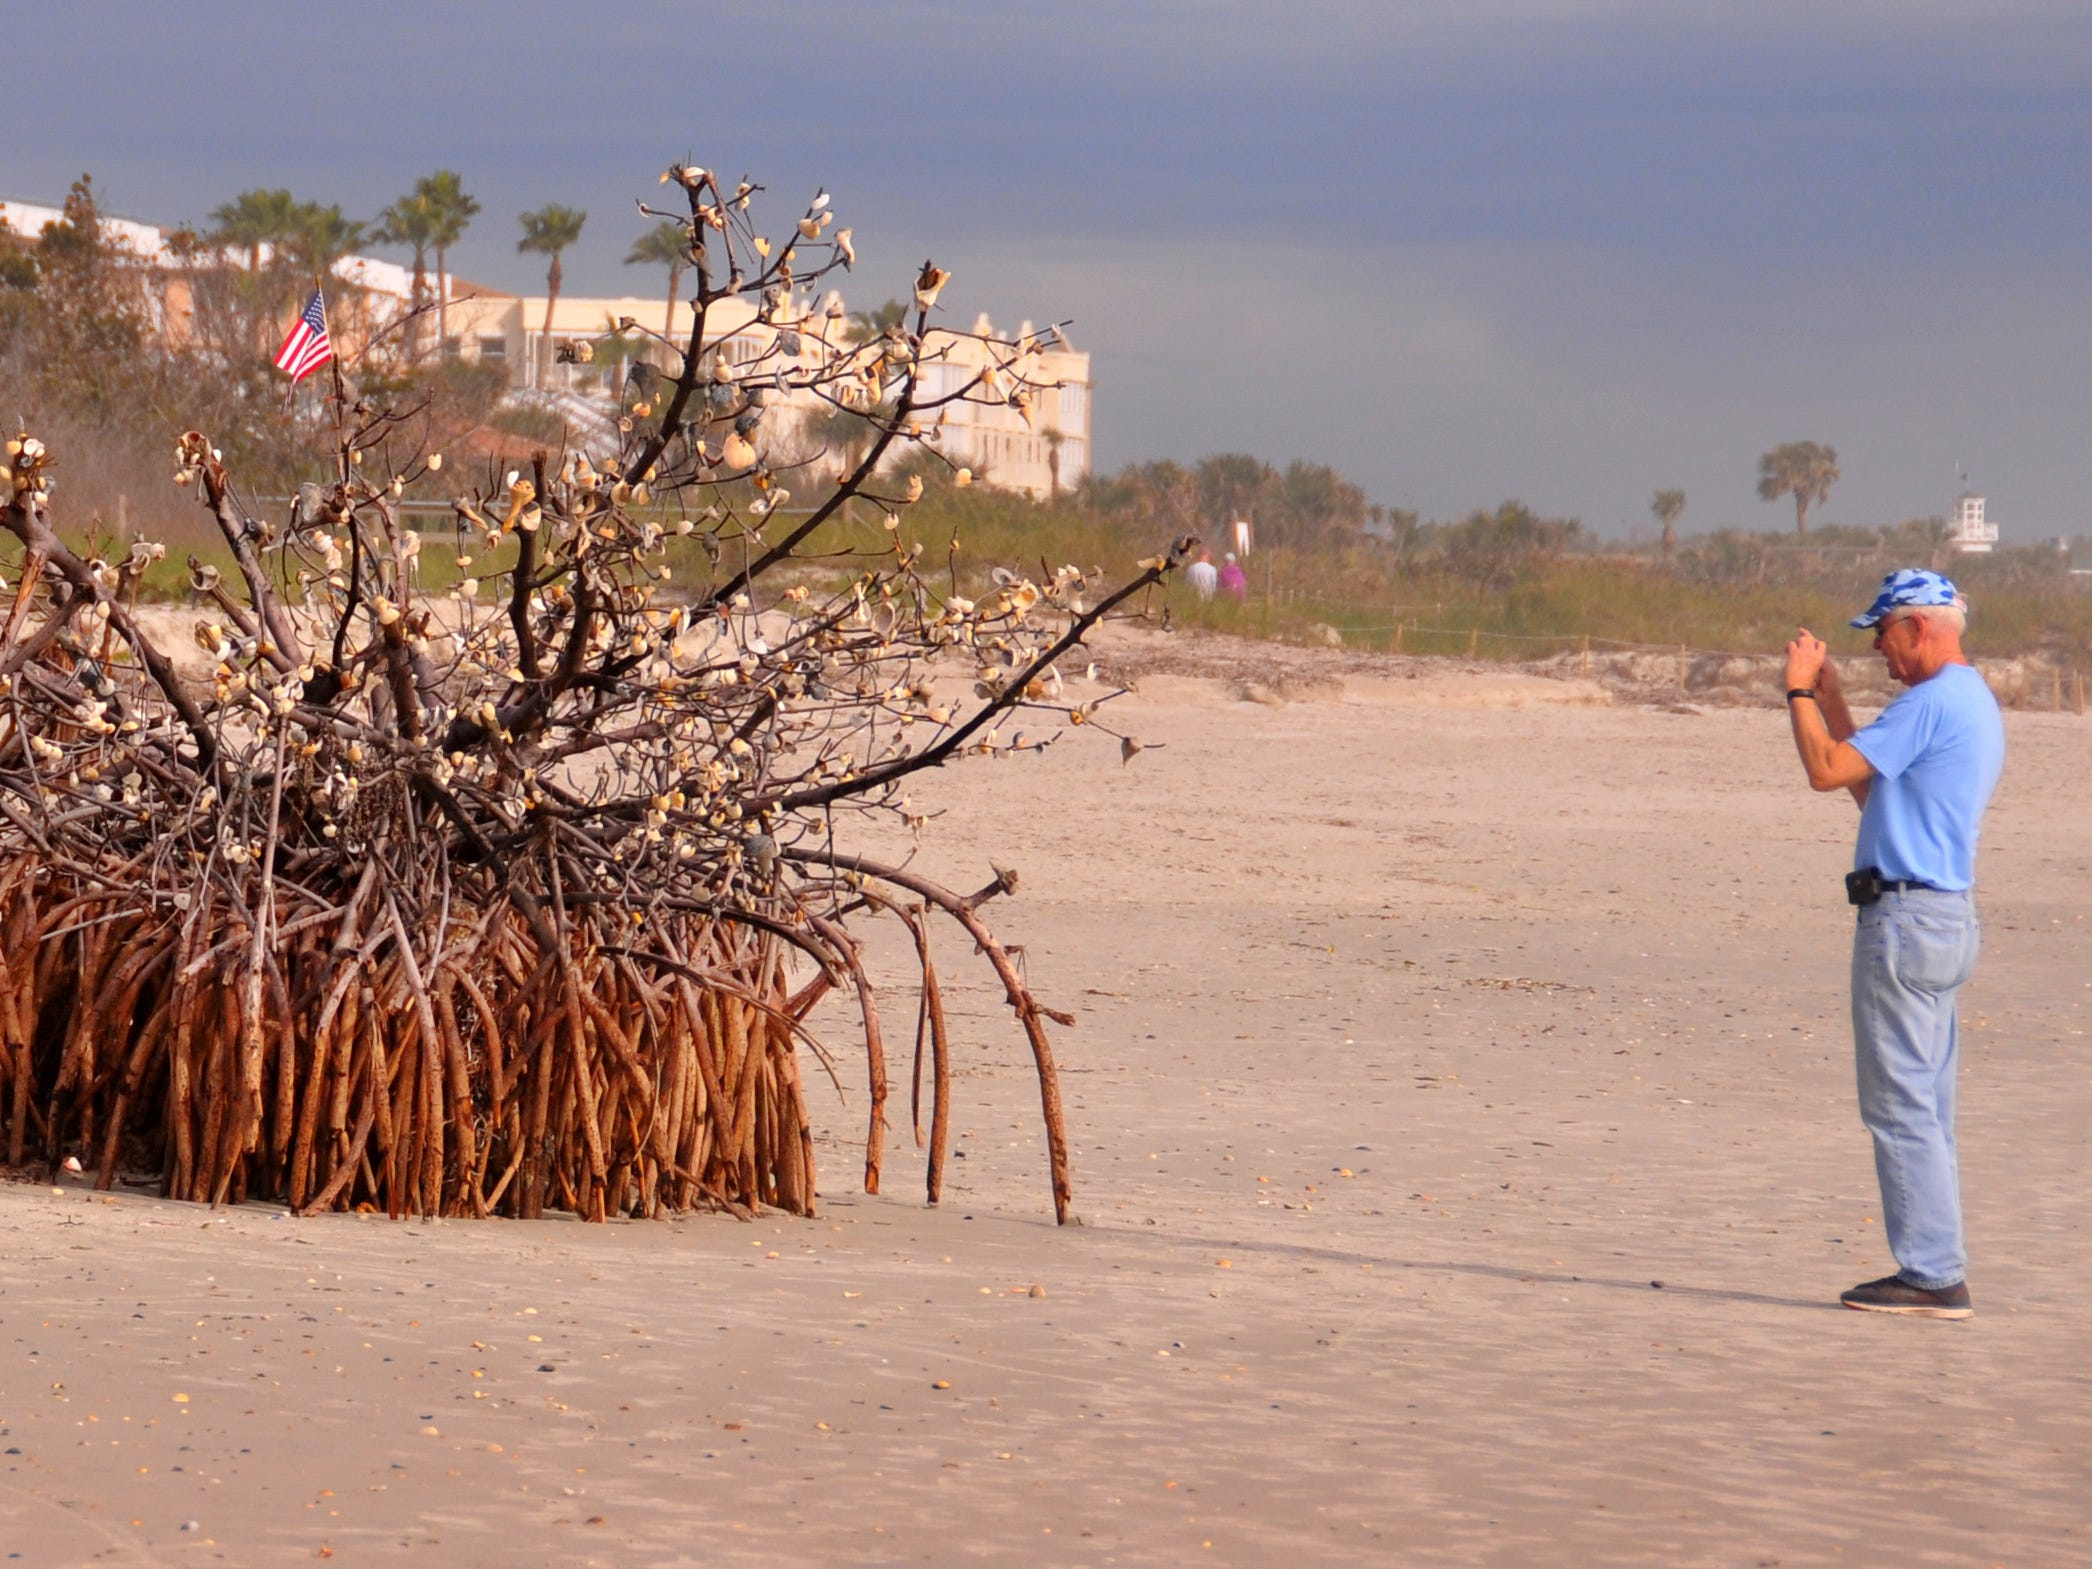 A large red mangrove tree, believed to have washed ashore during Hurricane Irma, has become a local landmark. Beach walkers have decorated the limbs of the tree, just north of Cherie Down Park in Cape Canaveral, with seashells from the beach, tied on with seaweed or stuck on a branch. The only non-native item on the tree is a small American flag secured with plastic ties. Most people pass the tree for a look or photo, some add shells to the collection.